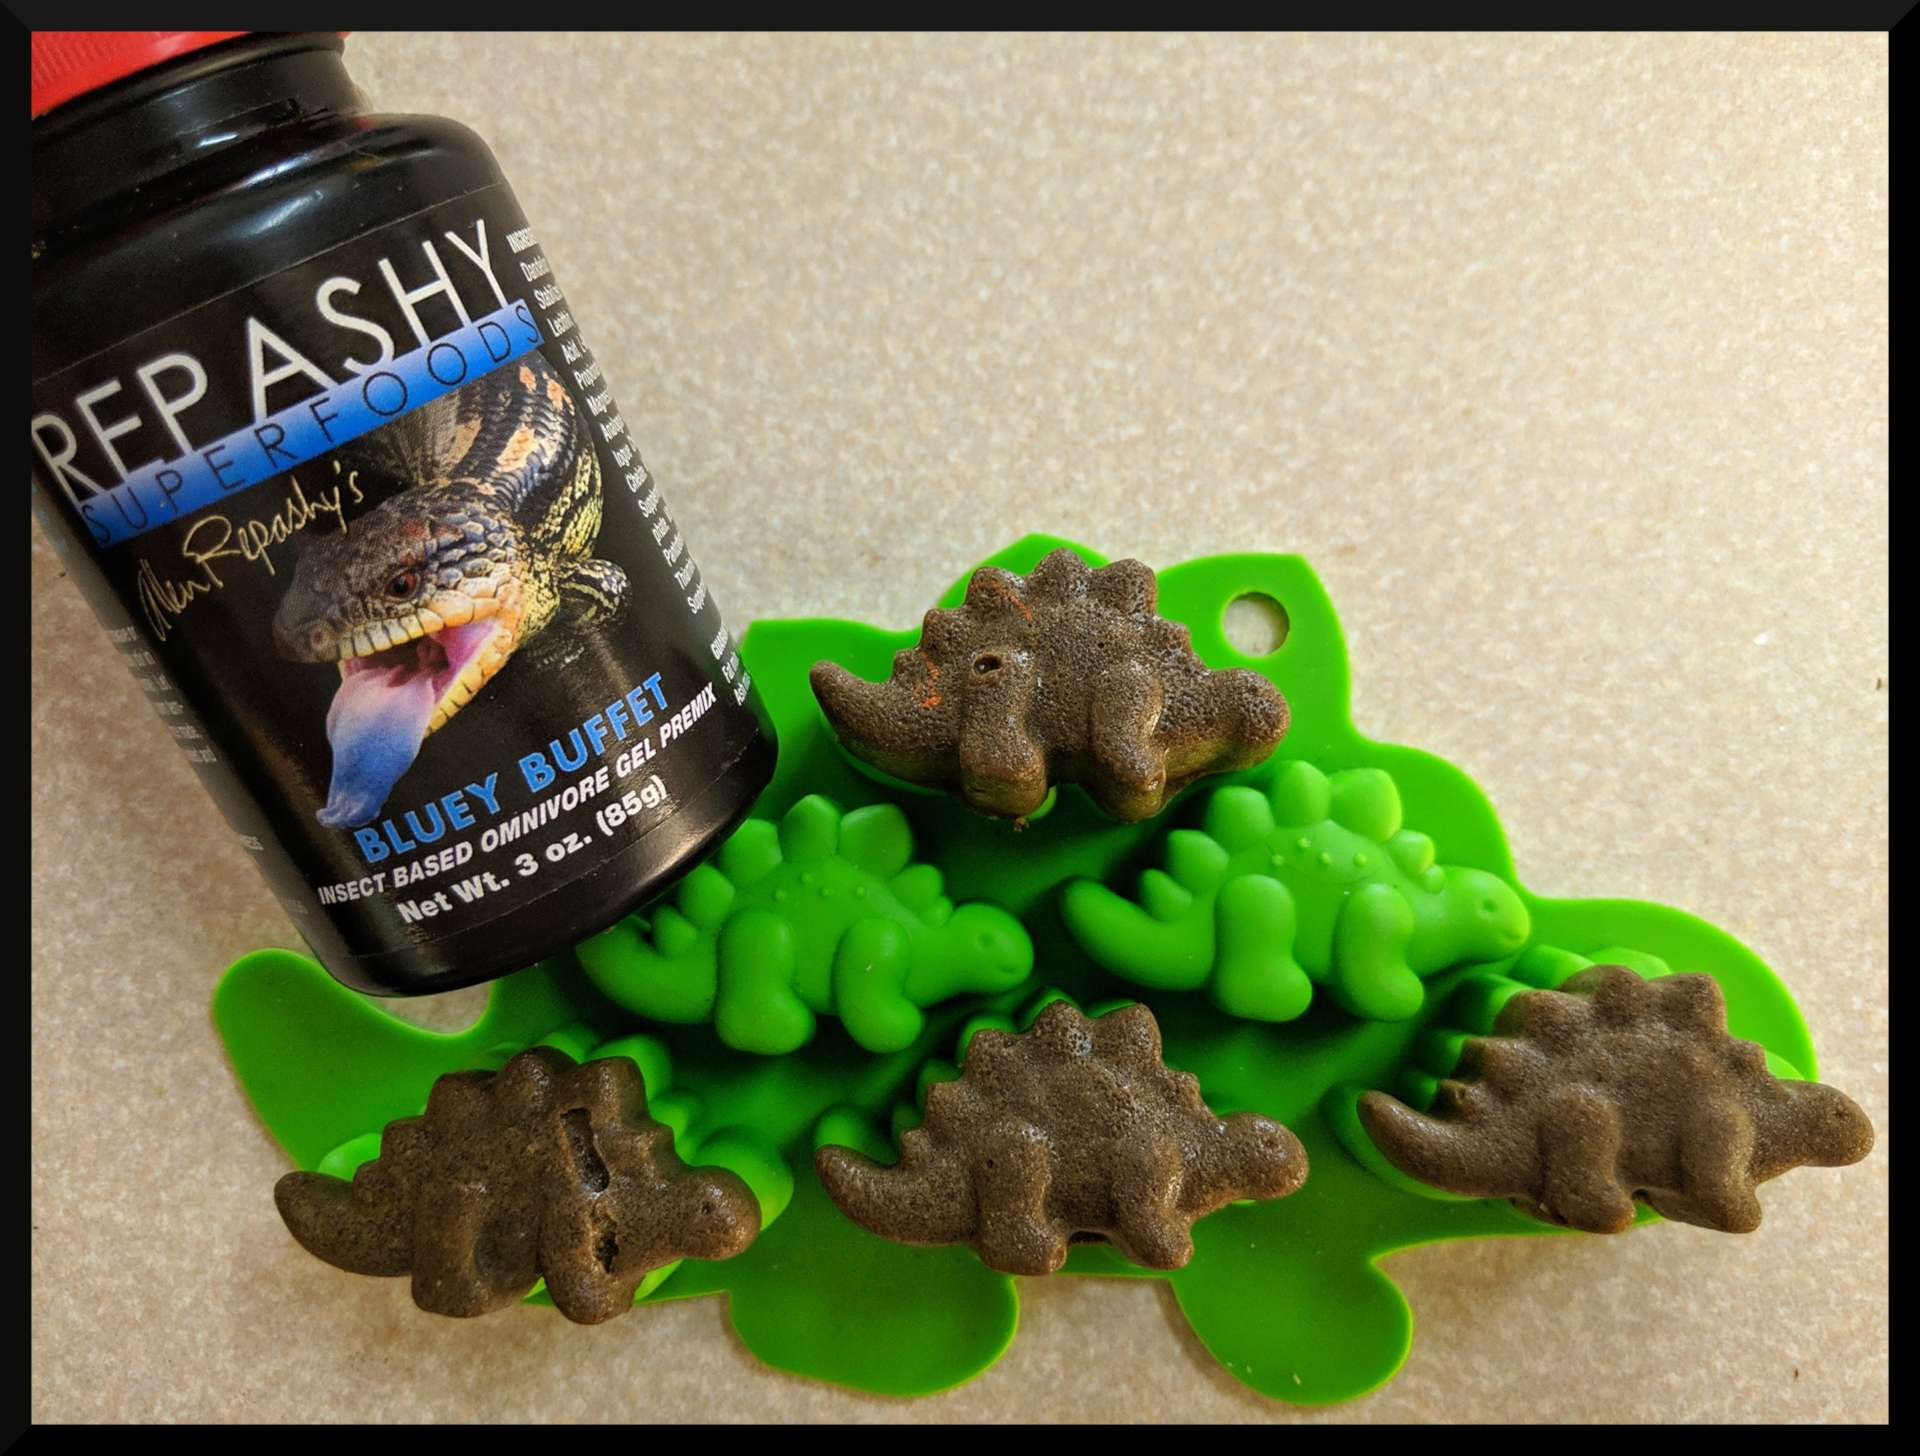 repashy gel food bottle next to green silicone mold in shape of dinosaurs